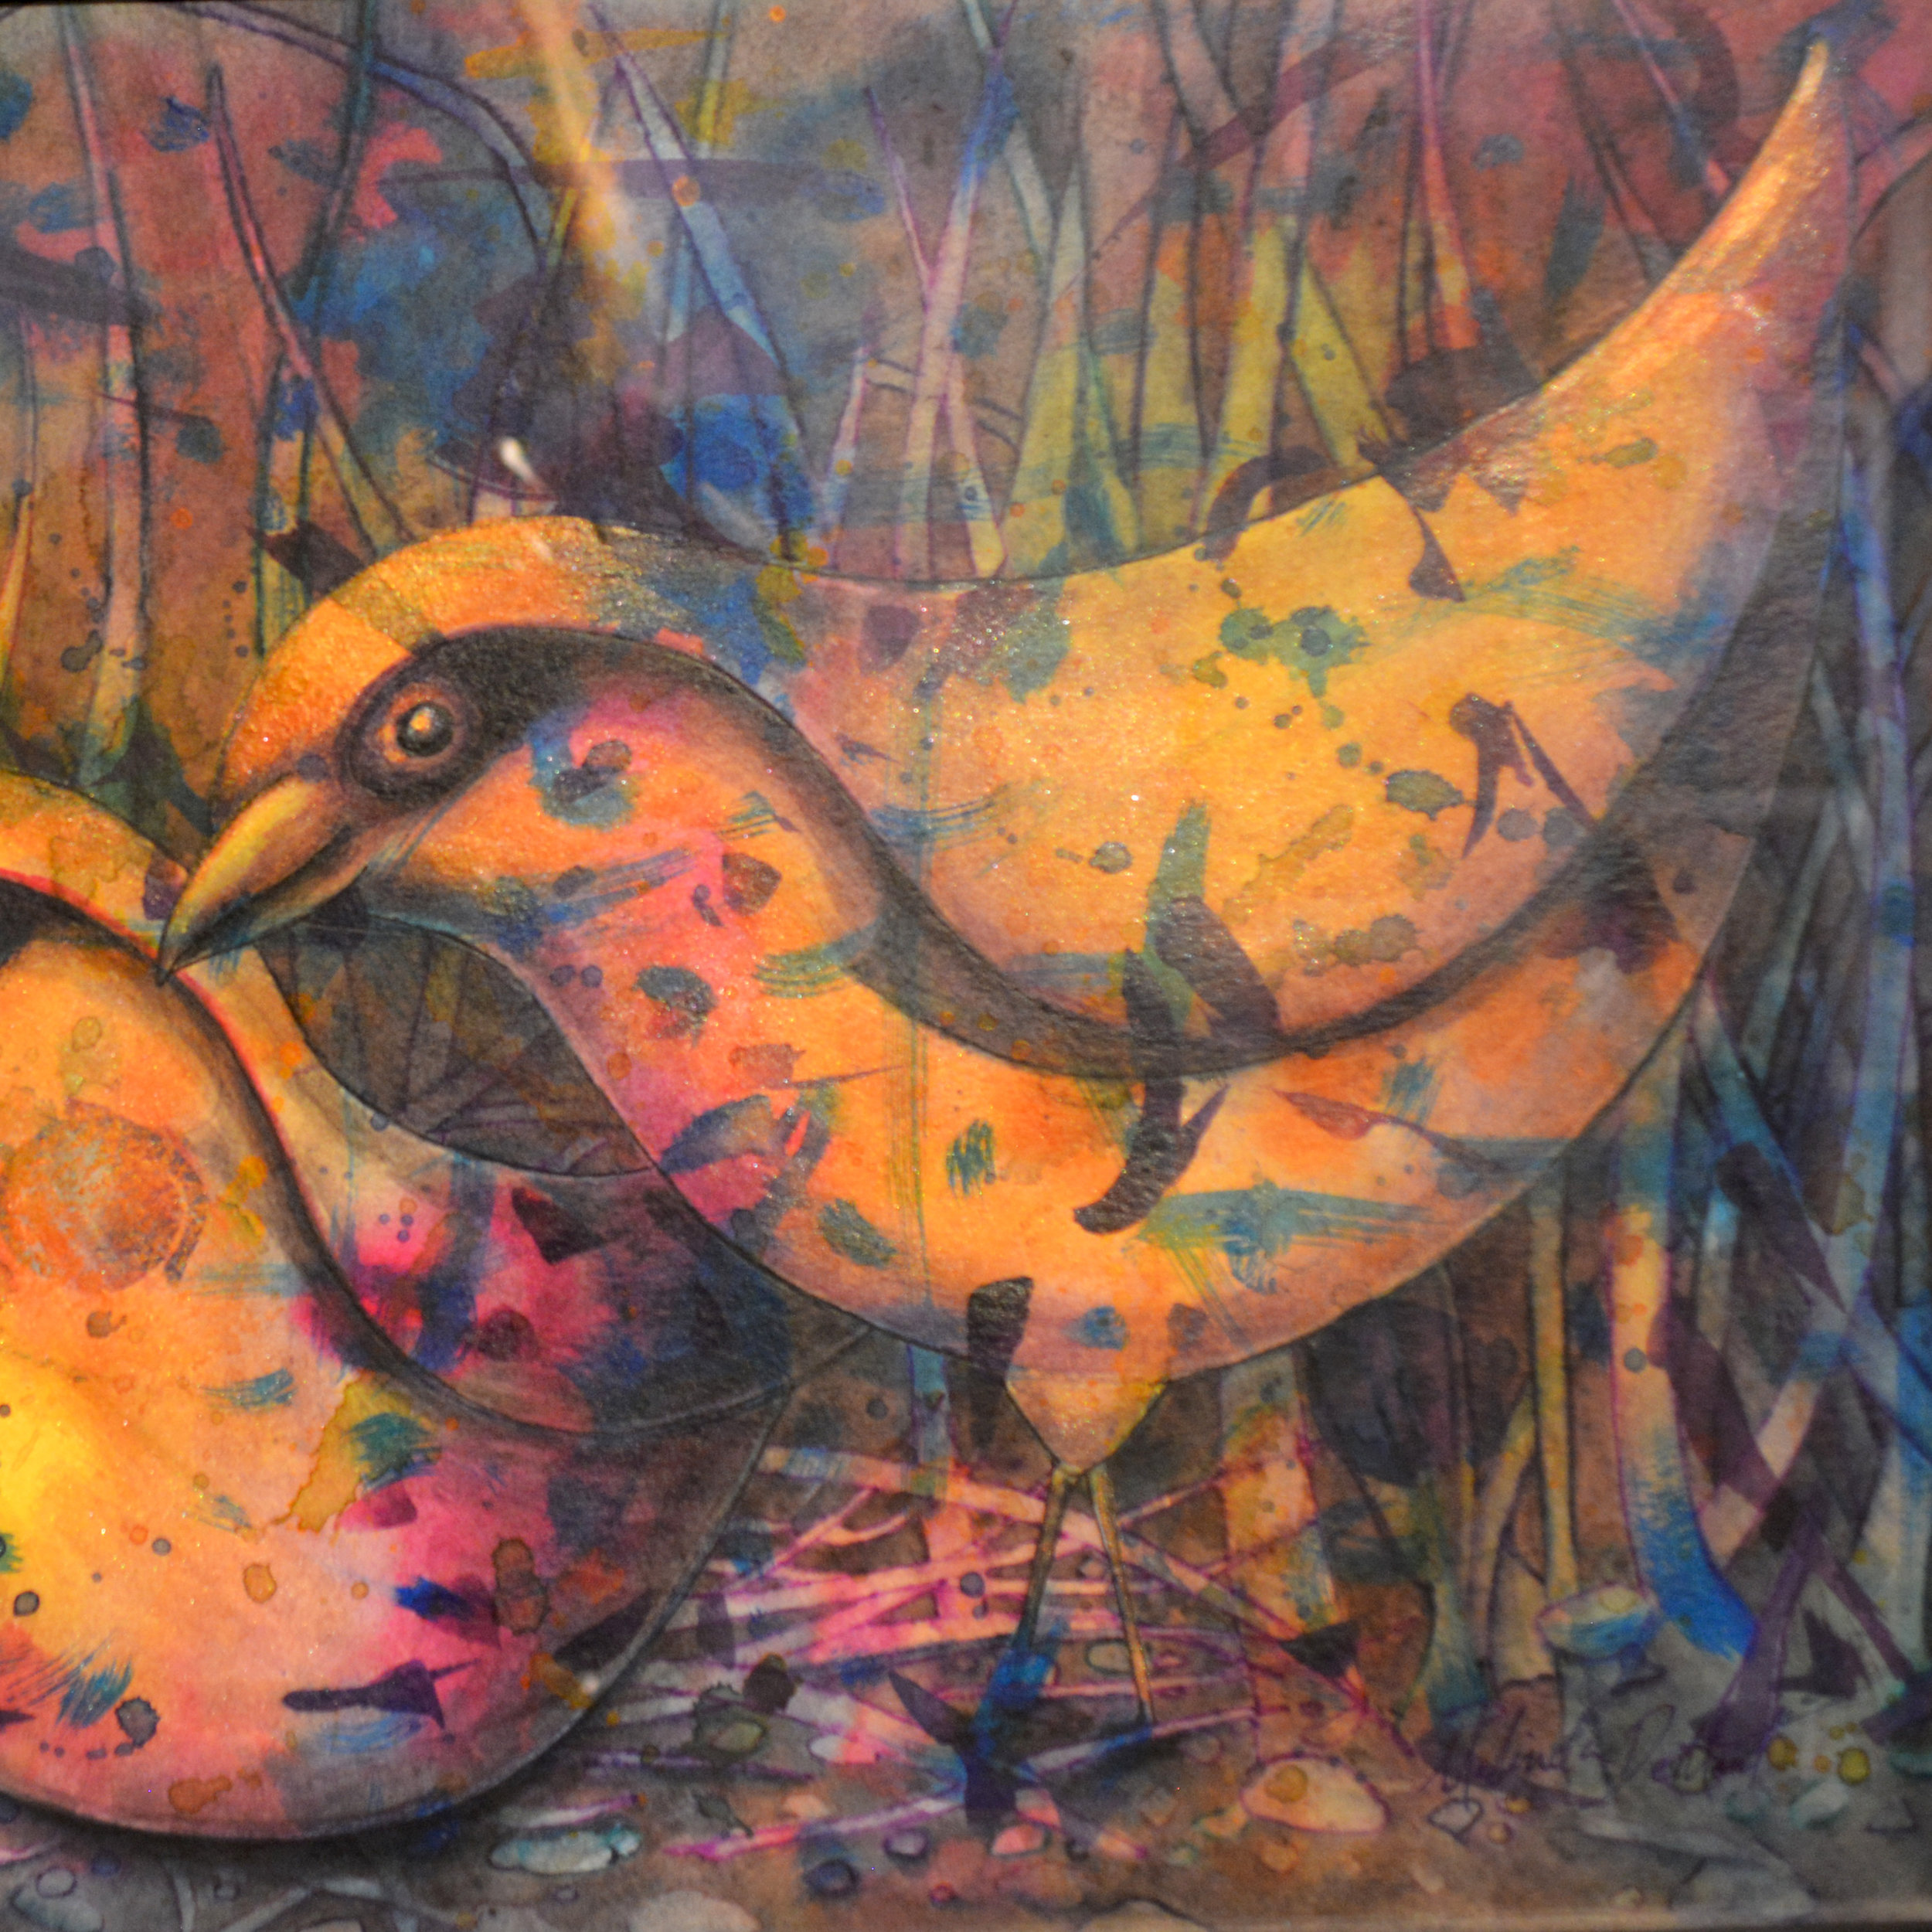 Melinda Dement - A mix of whimsical and spiritual work ranging in styles and subjects, mixed media.